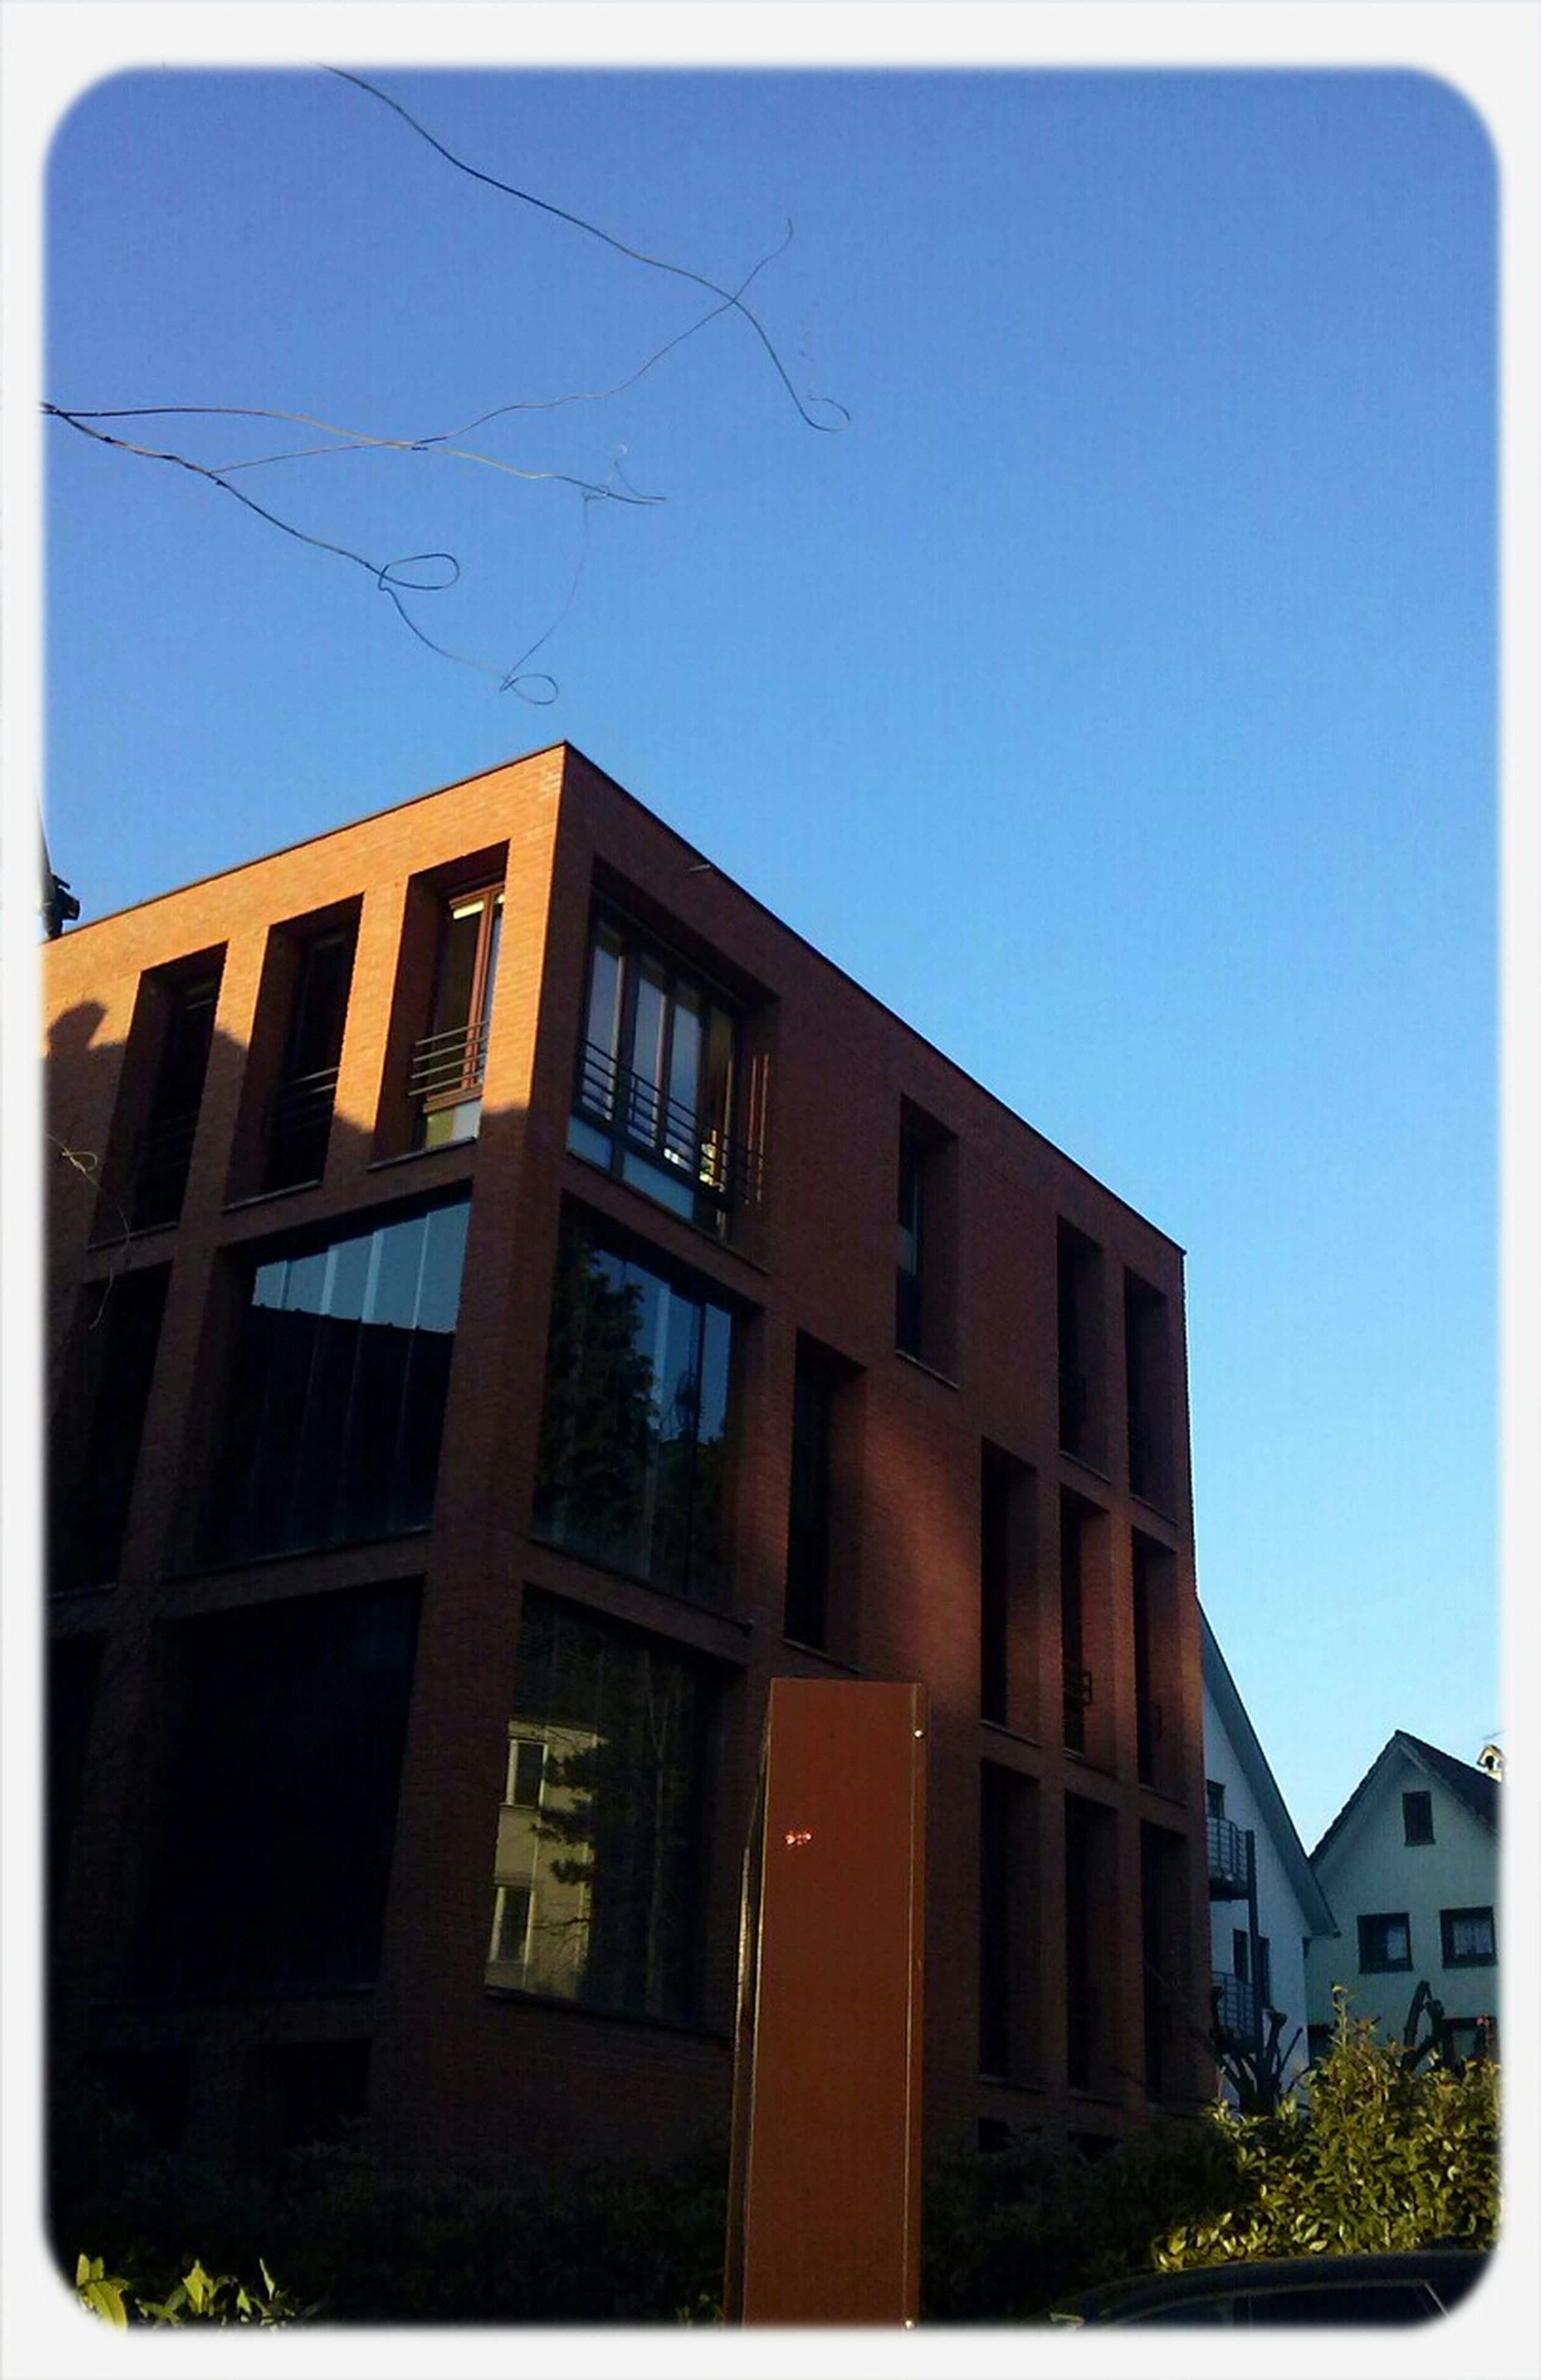 building exterior, architecture, built structure, low angle view, clear sky, window, residential building, residential structure, building, transfer print, blue, auto post production filter, house, city, day, outdoors, apartment, copy space, sky, no people